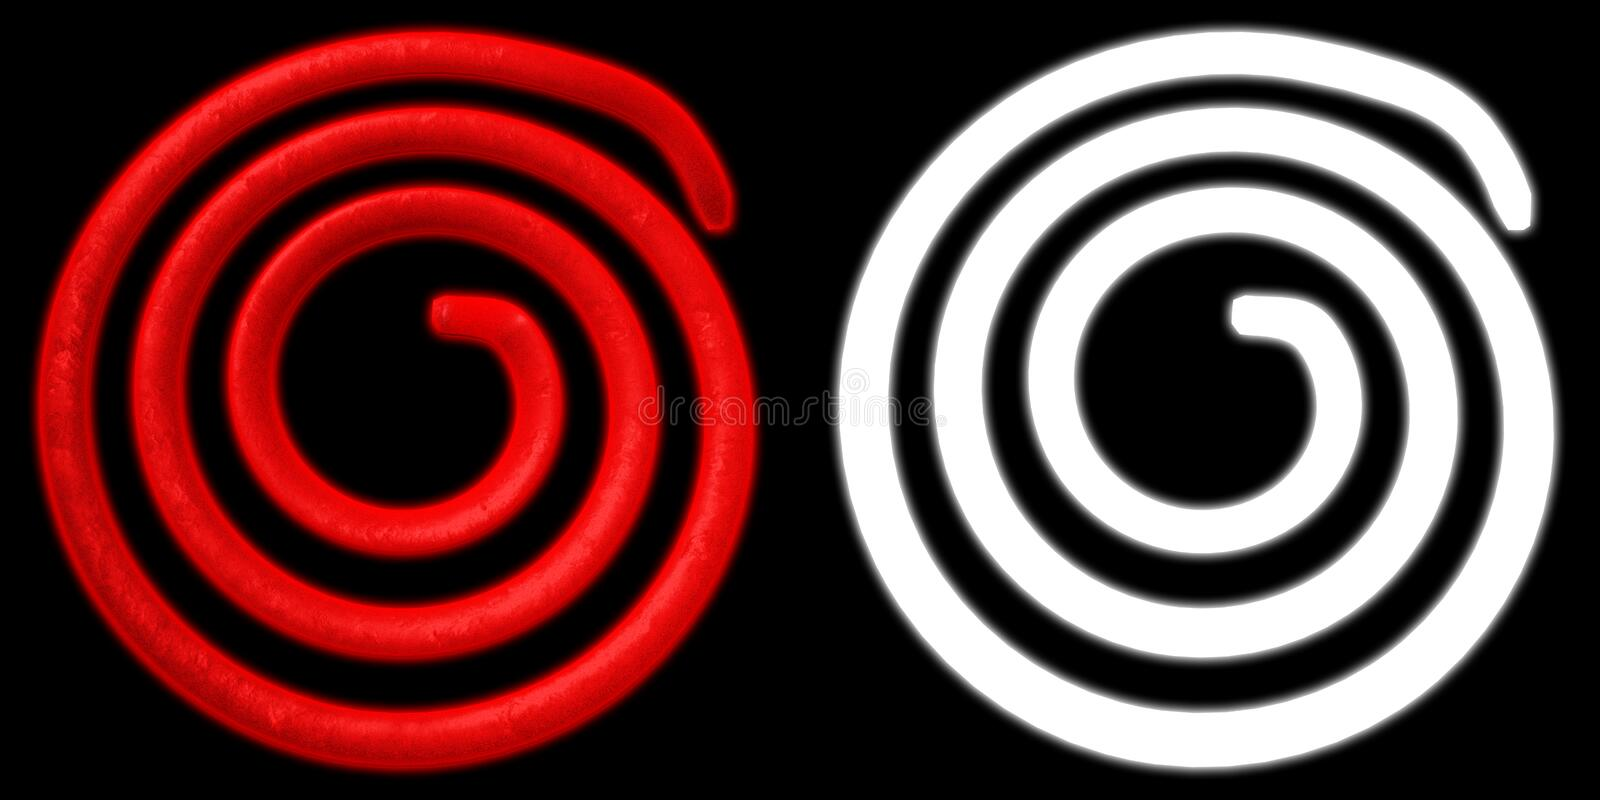 Electric spiral heated to a red. Heating coil element. with alpha channel. 3D illustration.  stock illustration